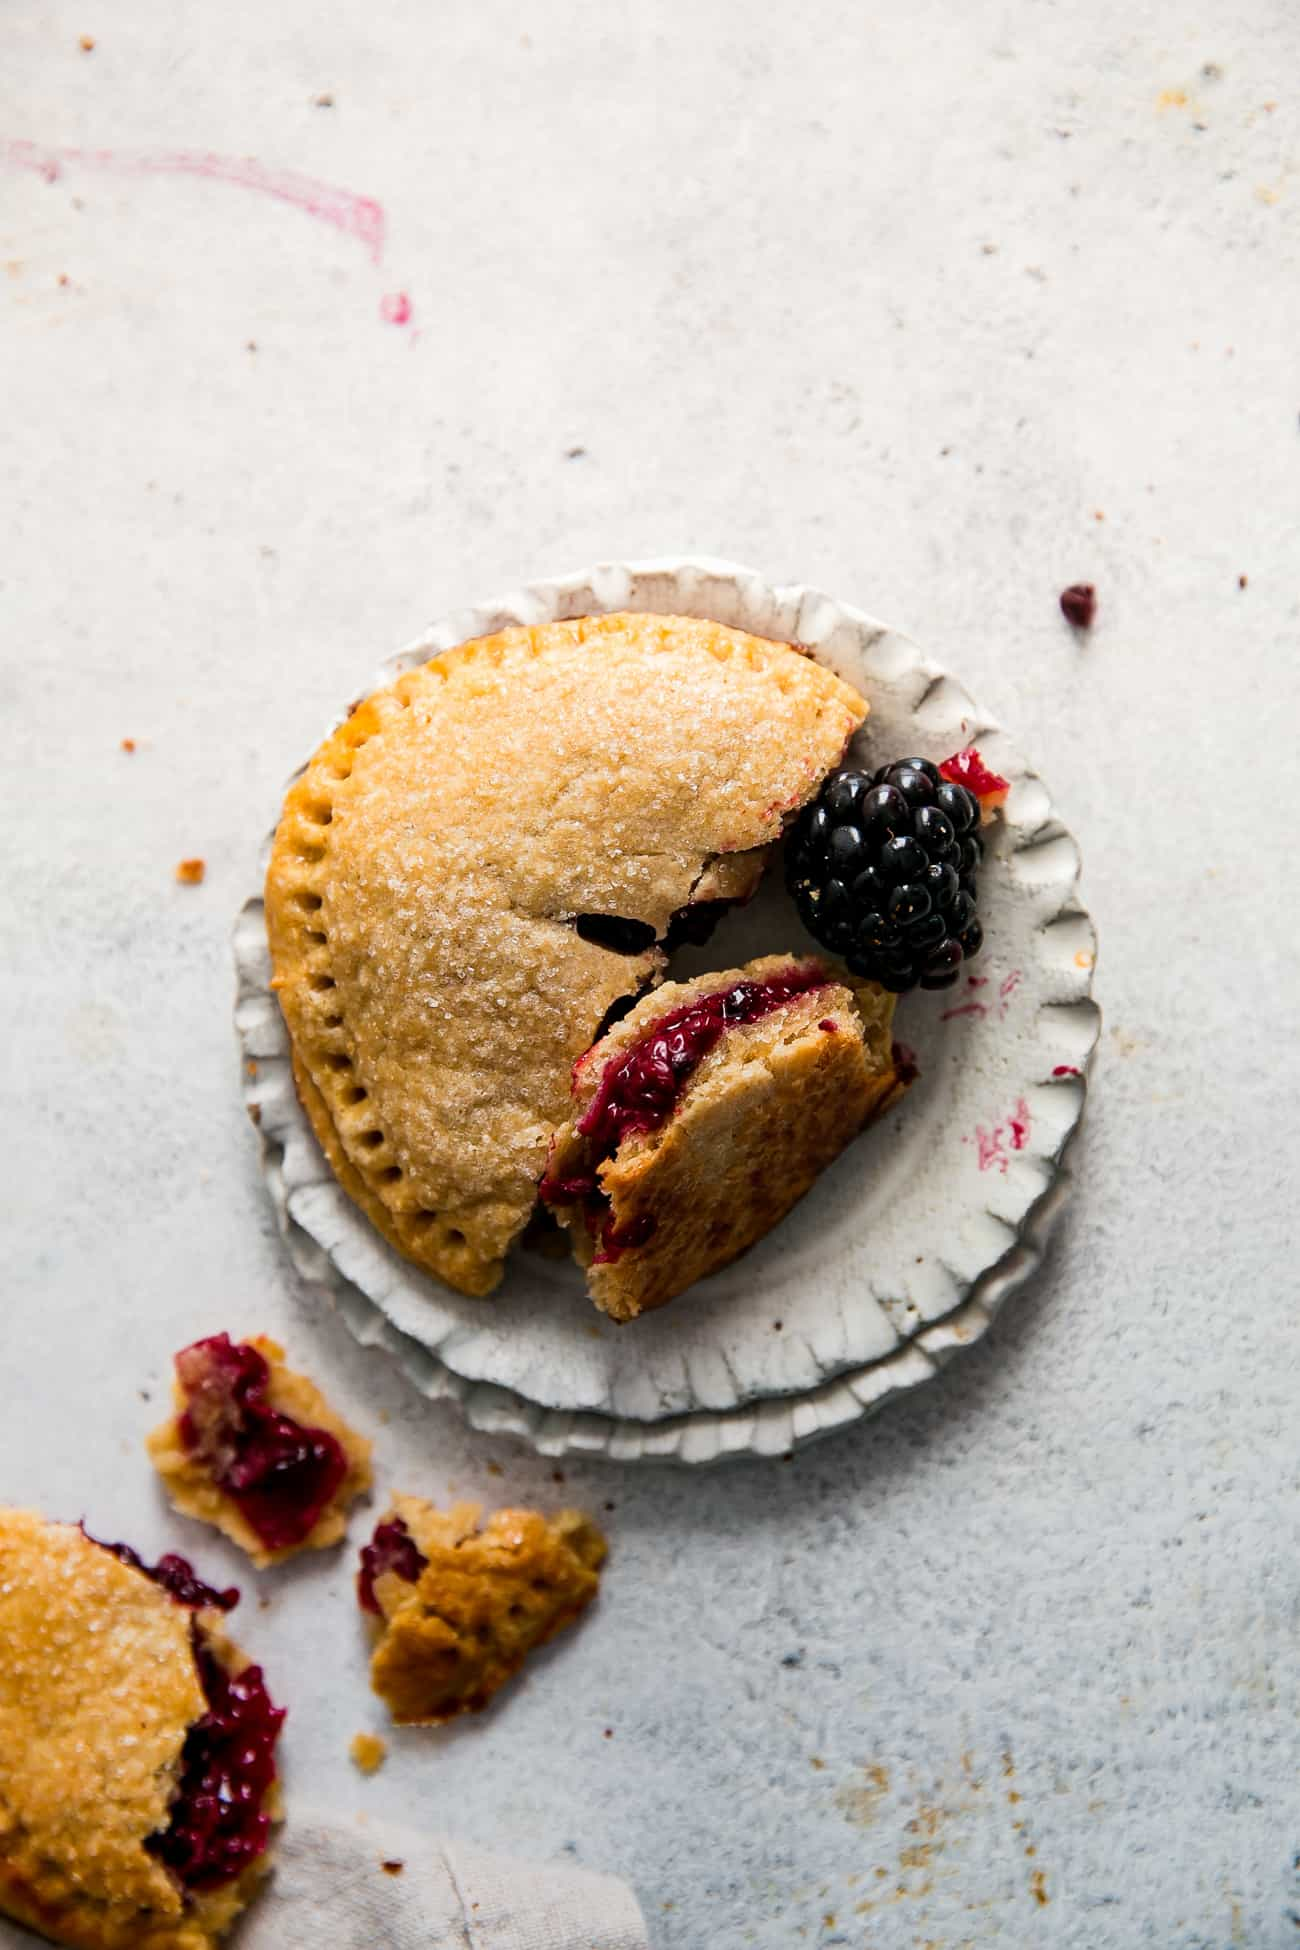 blackberry hand pie on two small plates, next to a blackberry